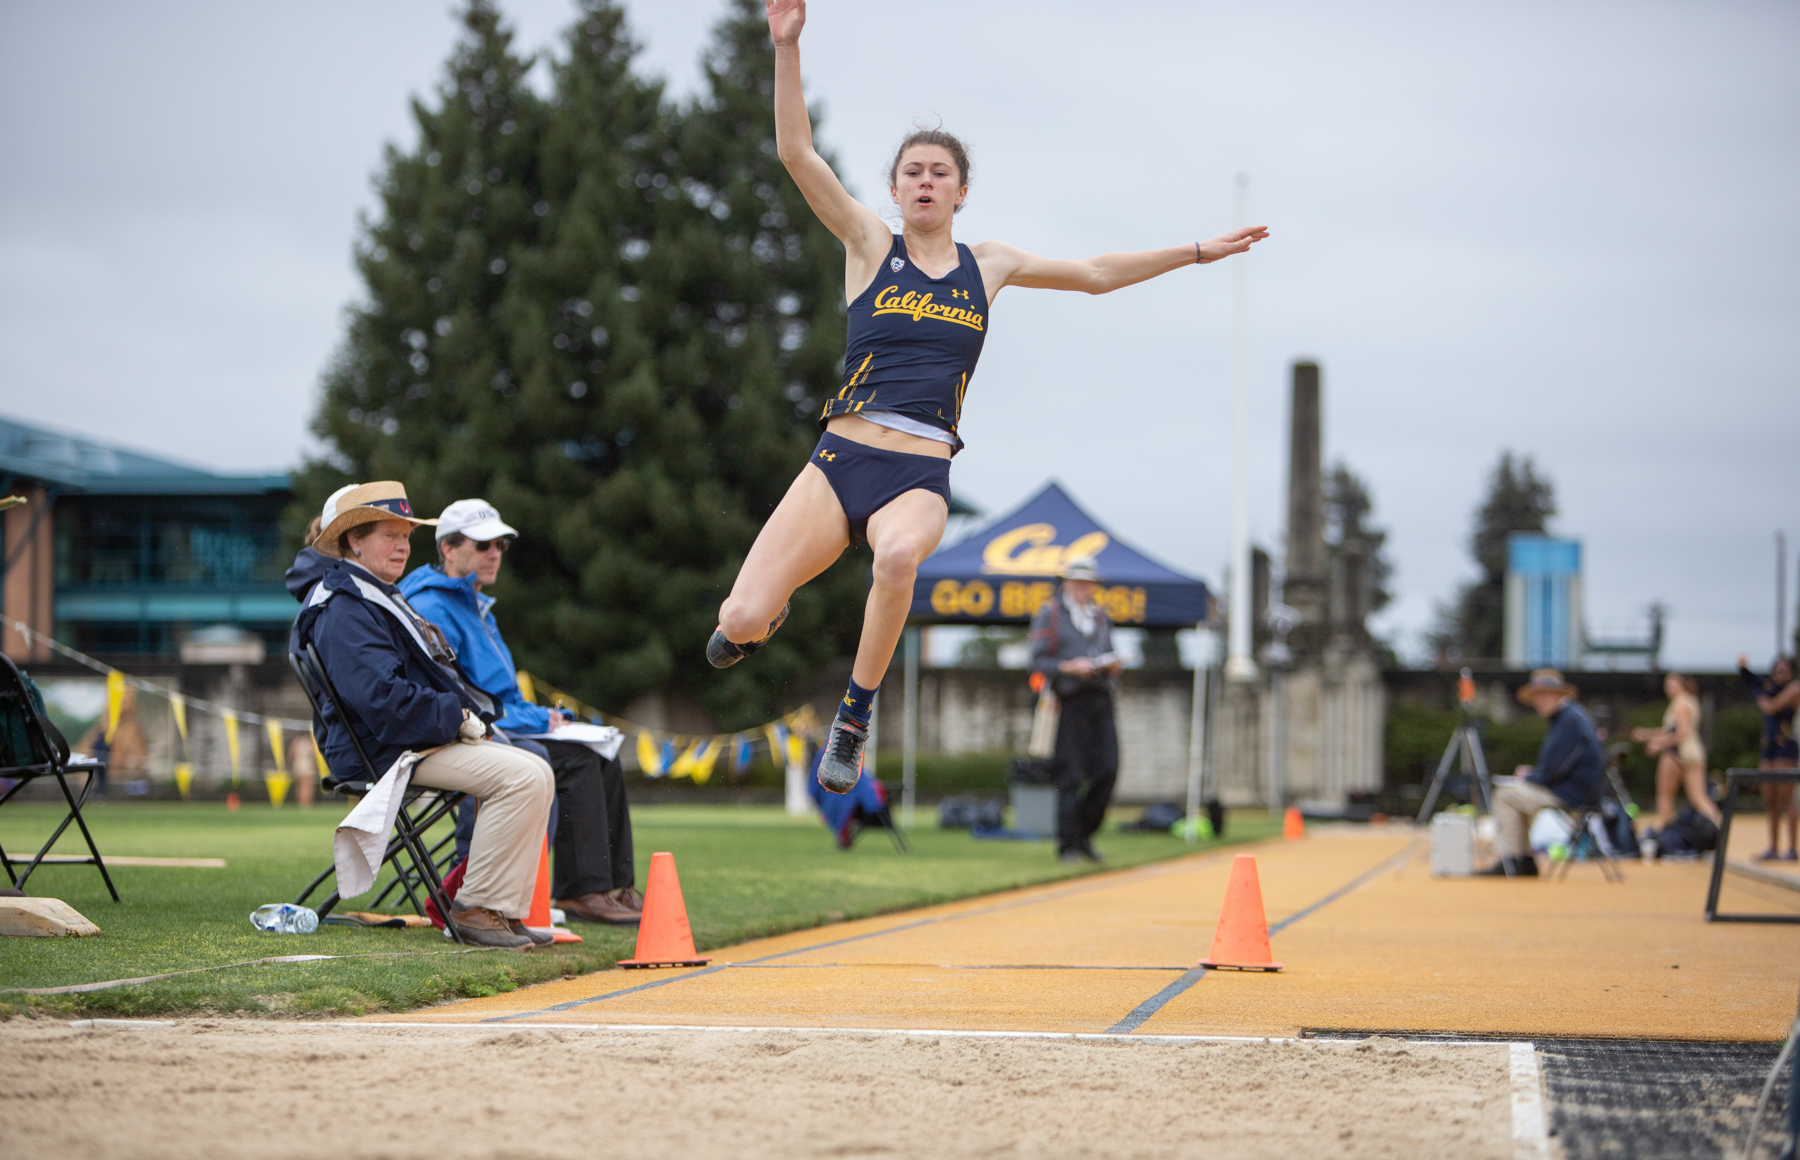 Final countdown: Bears ready for Pac-12 championships